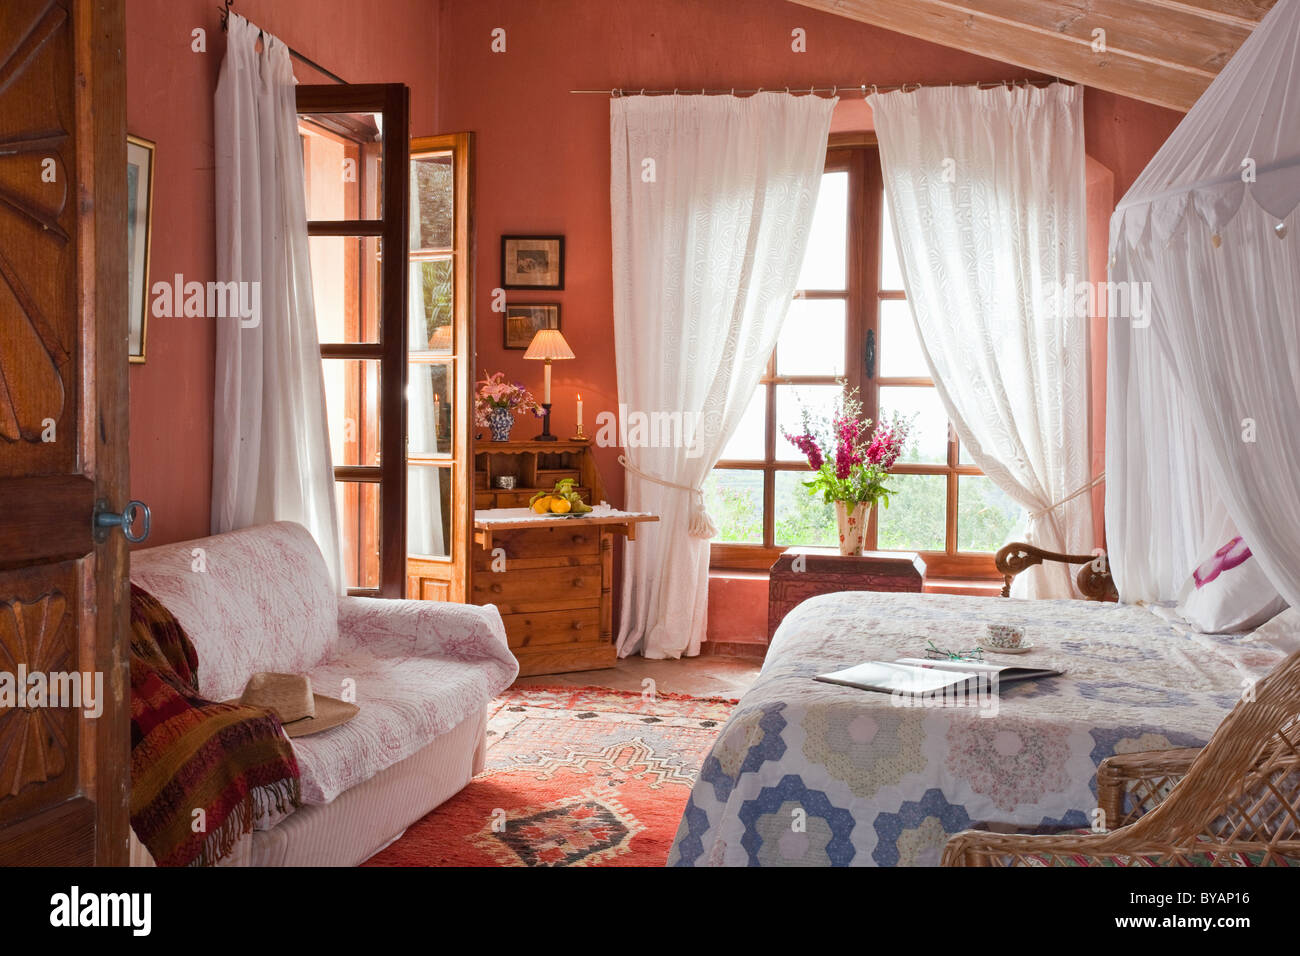 Beautiful bedroom in villa in Spain - Stock Image